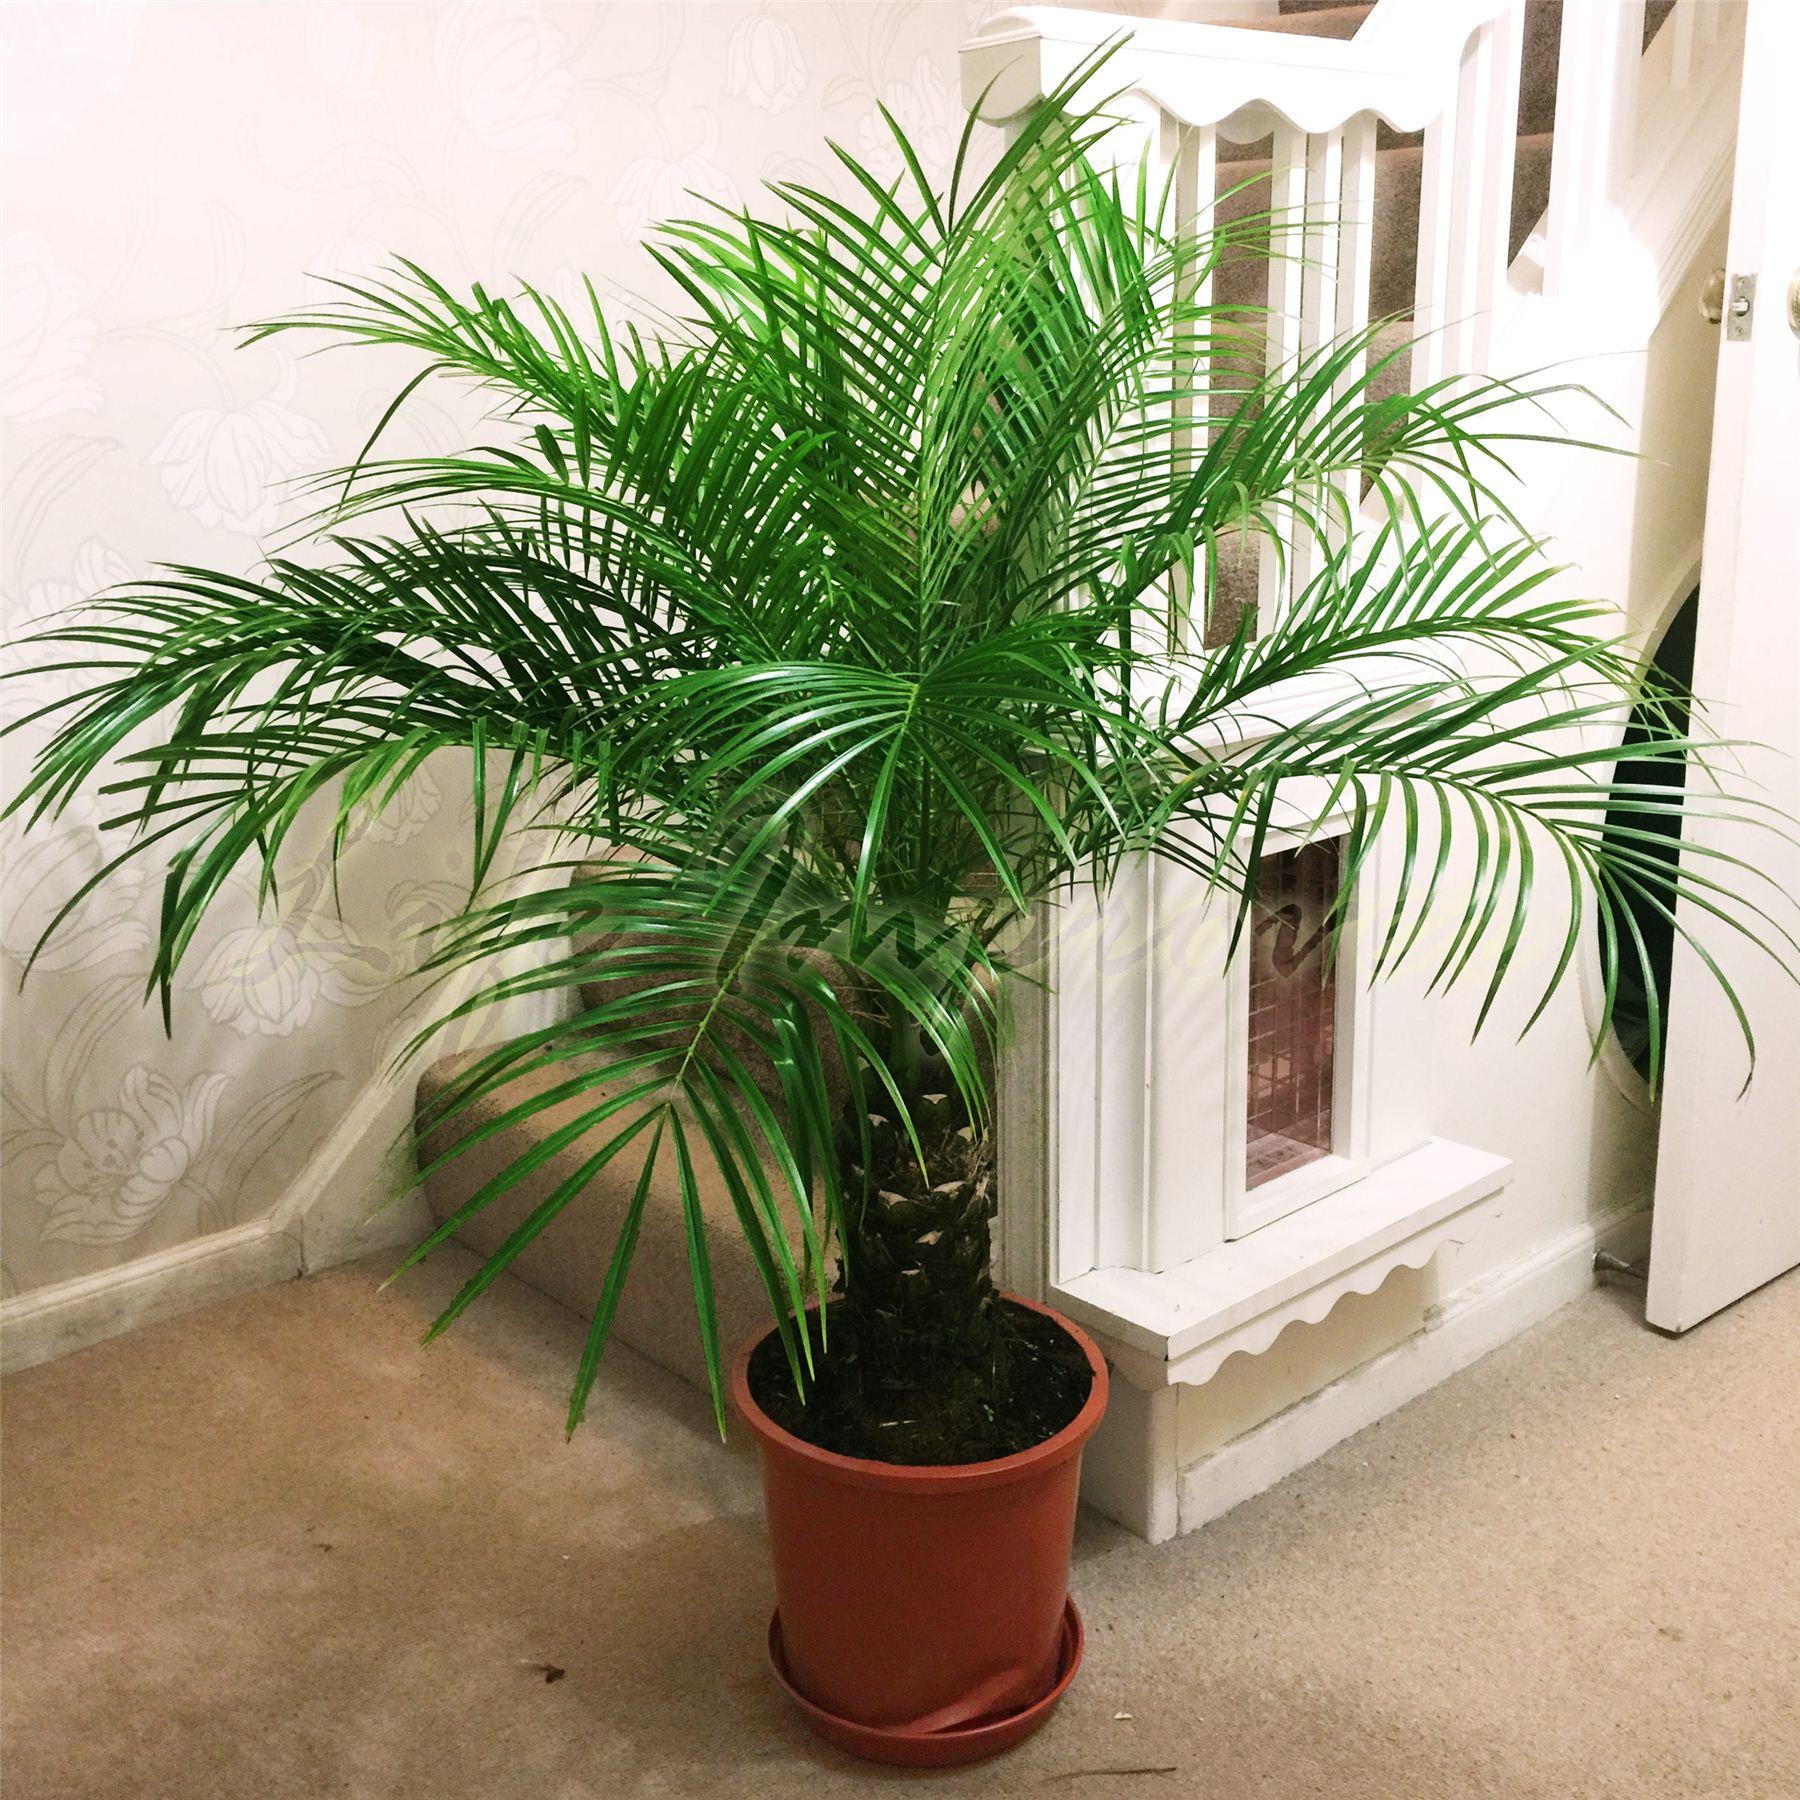 Nasa Approved Houseplants For Fresher Air Part 1 Real